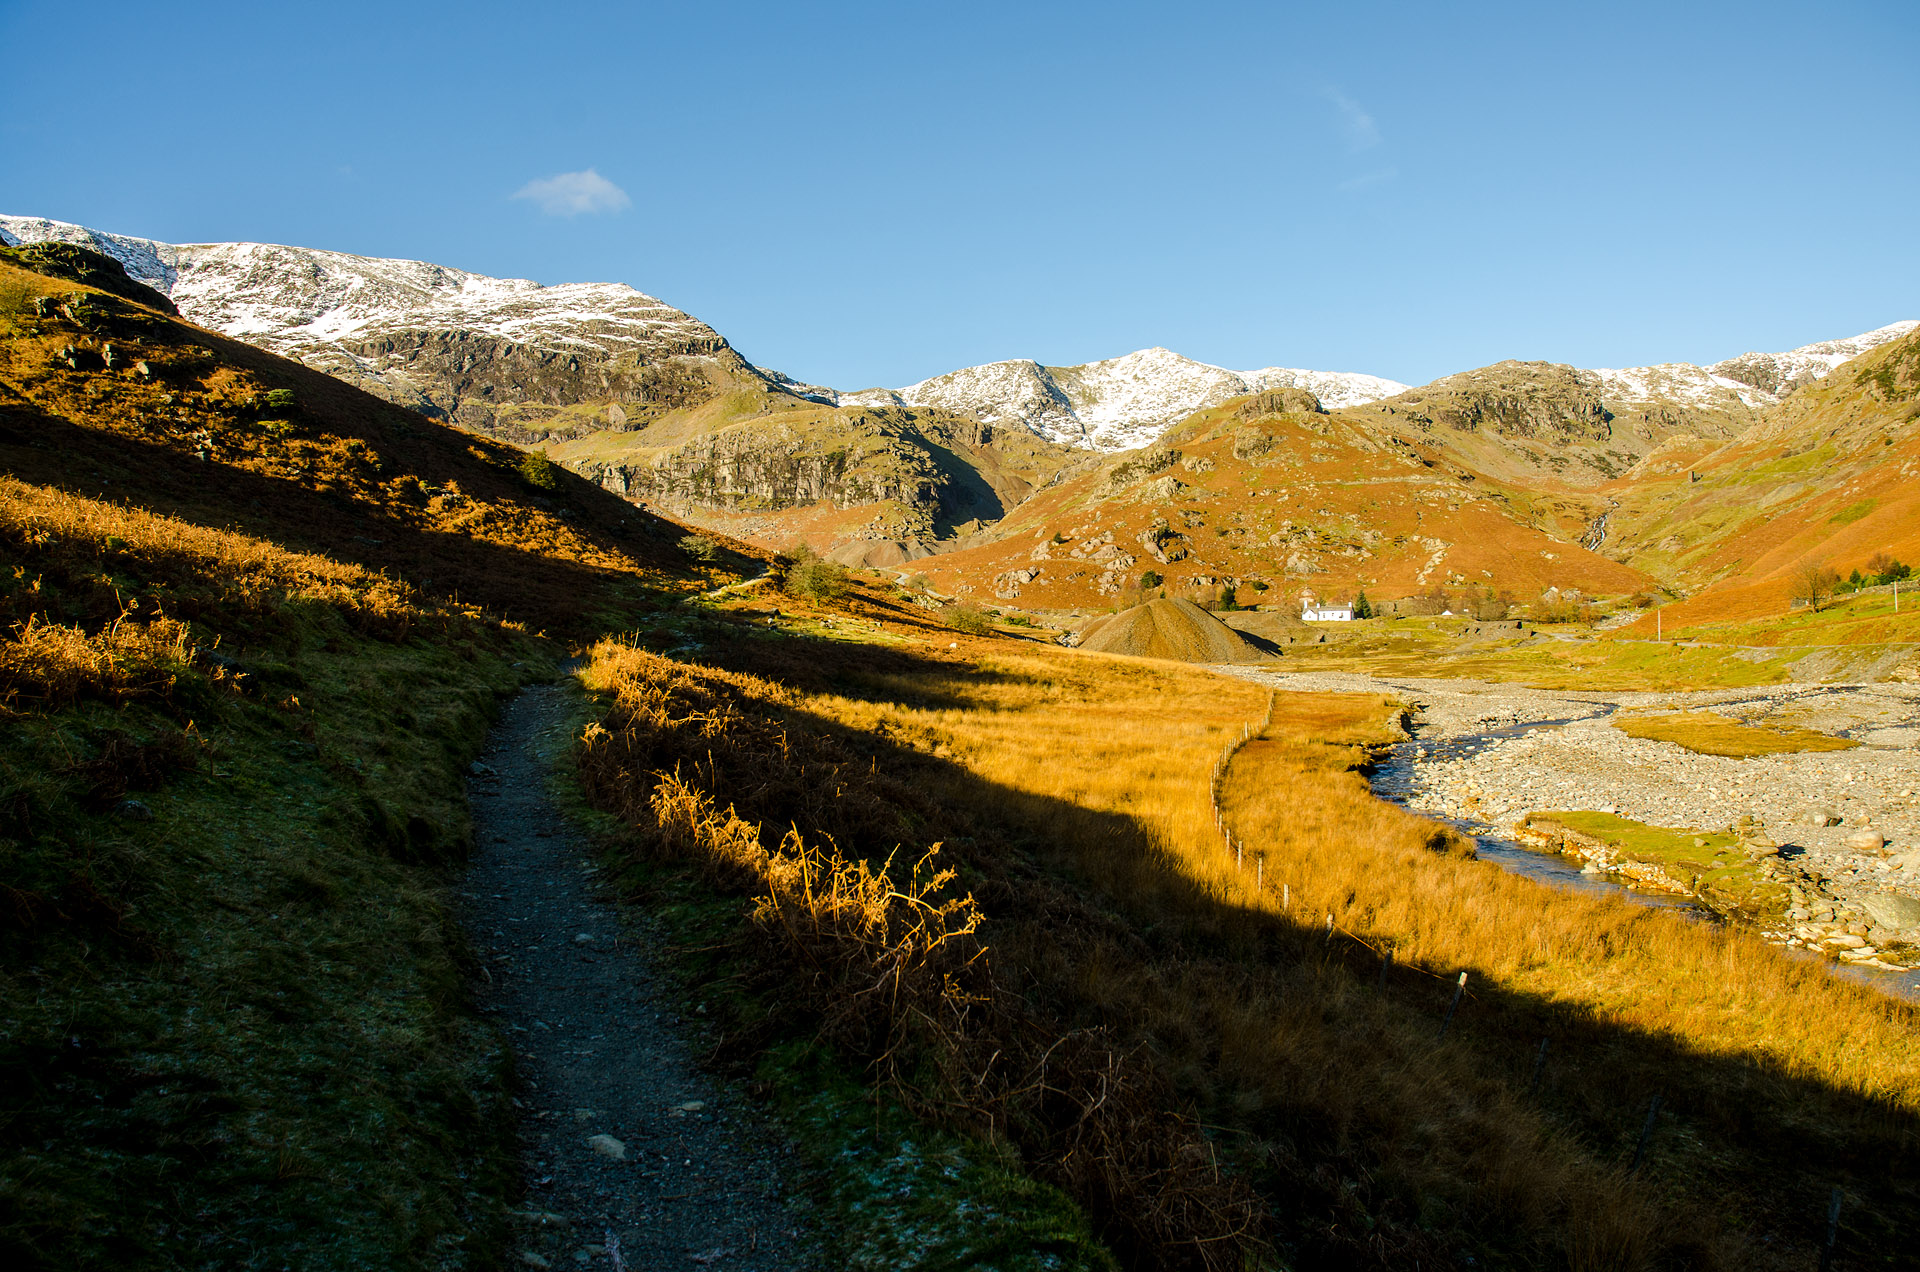 Old Man of Coniston trailhead